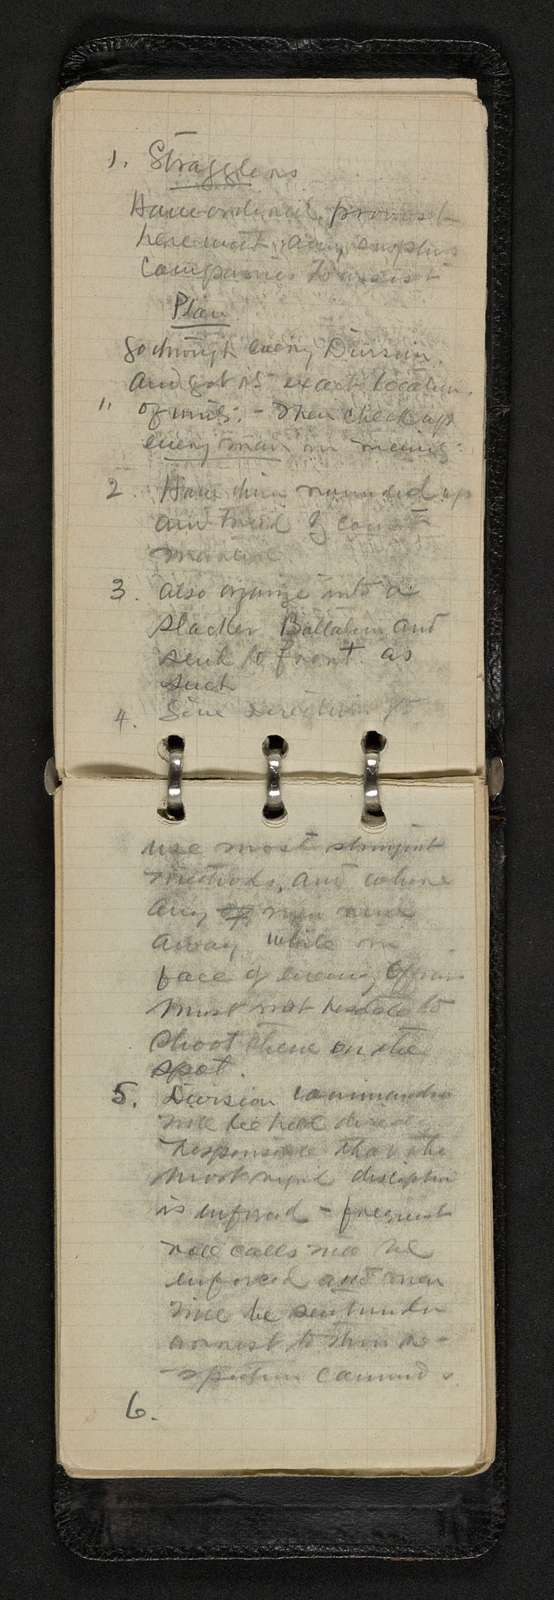 John J. Pershing Papers: Diaries, Notebooks, and Address Books, 1882-1925; Notebooks; circa 1917-1919 (2 of 3)